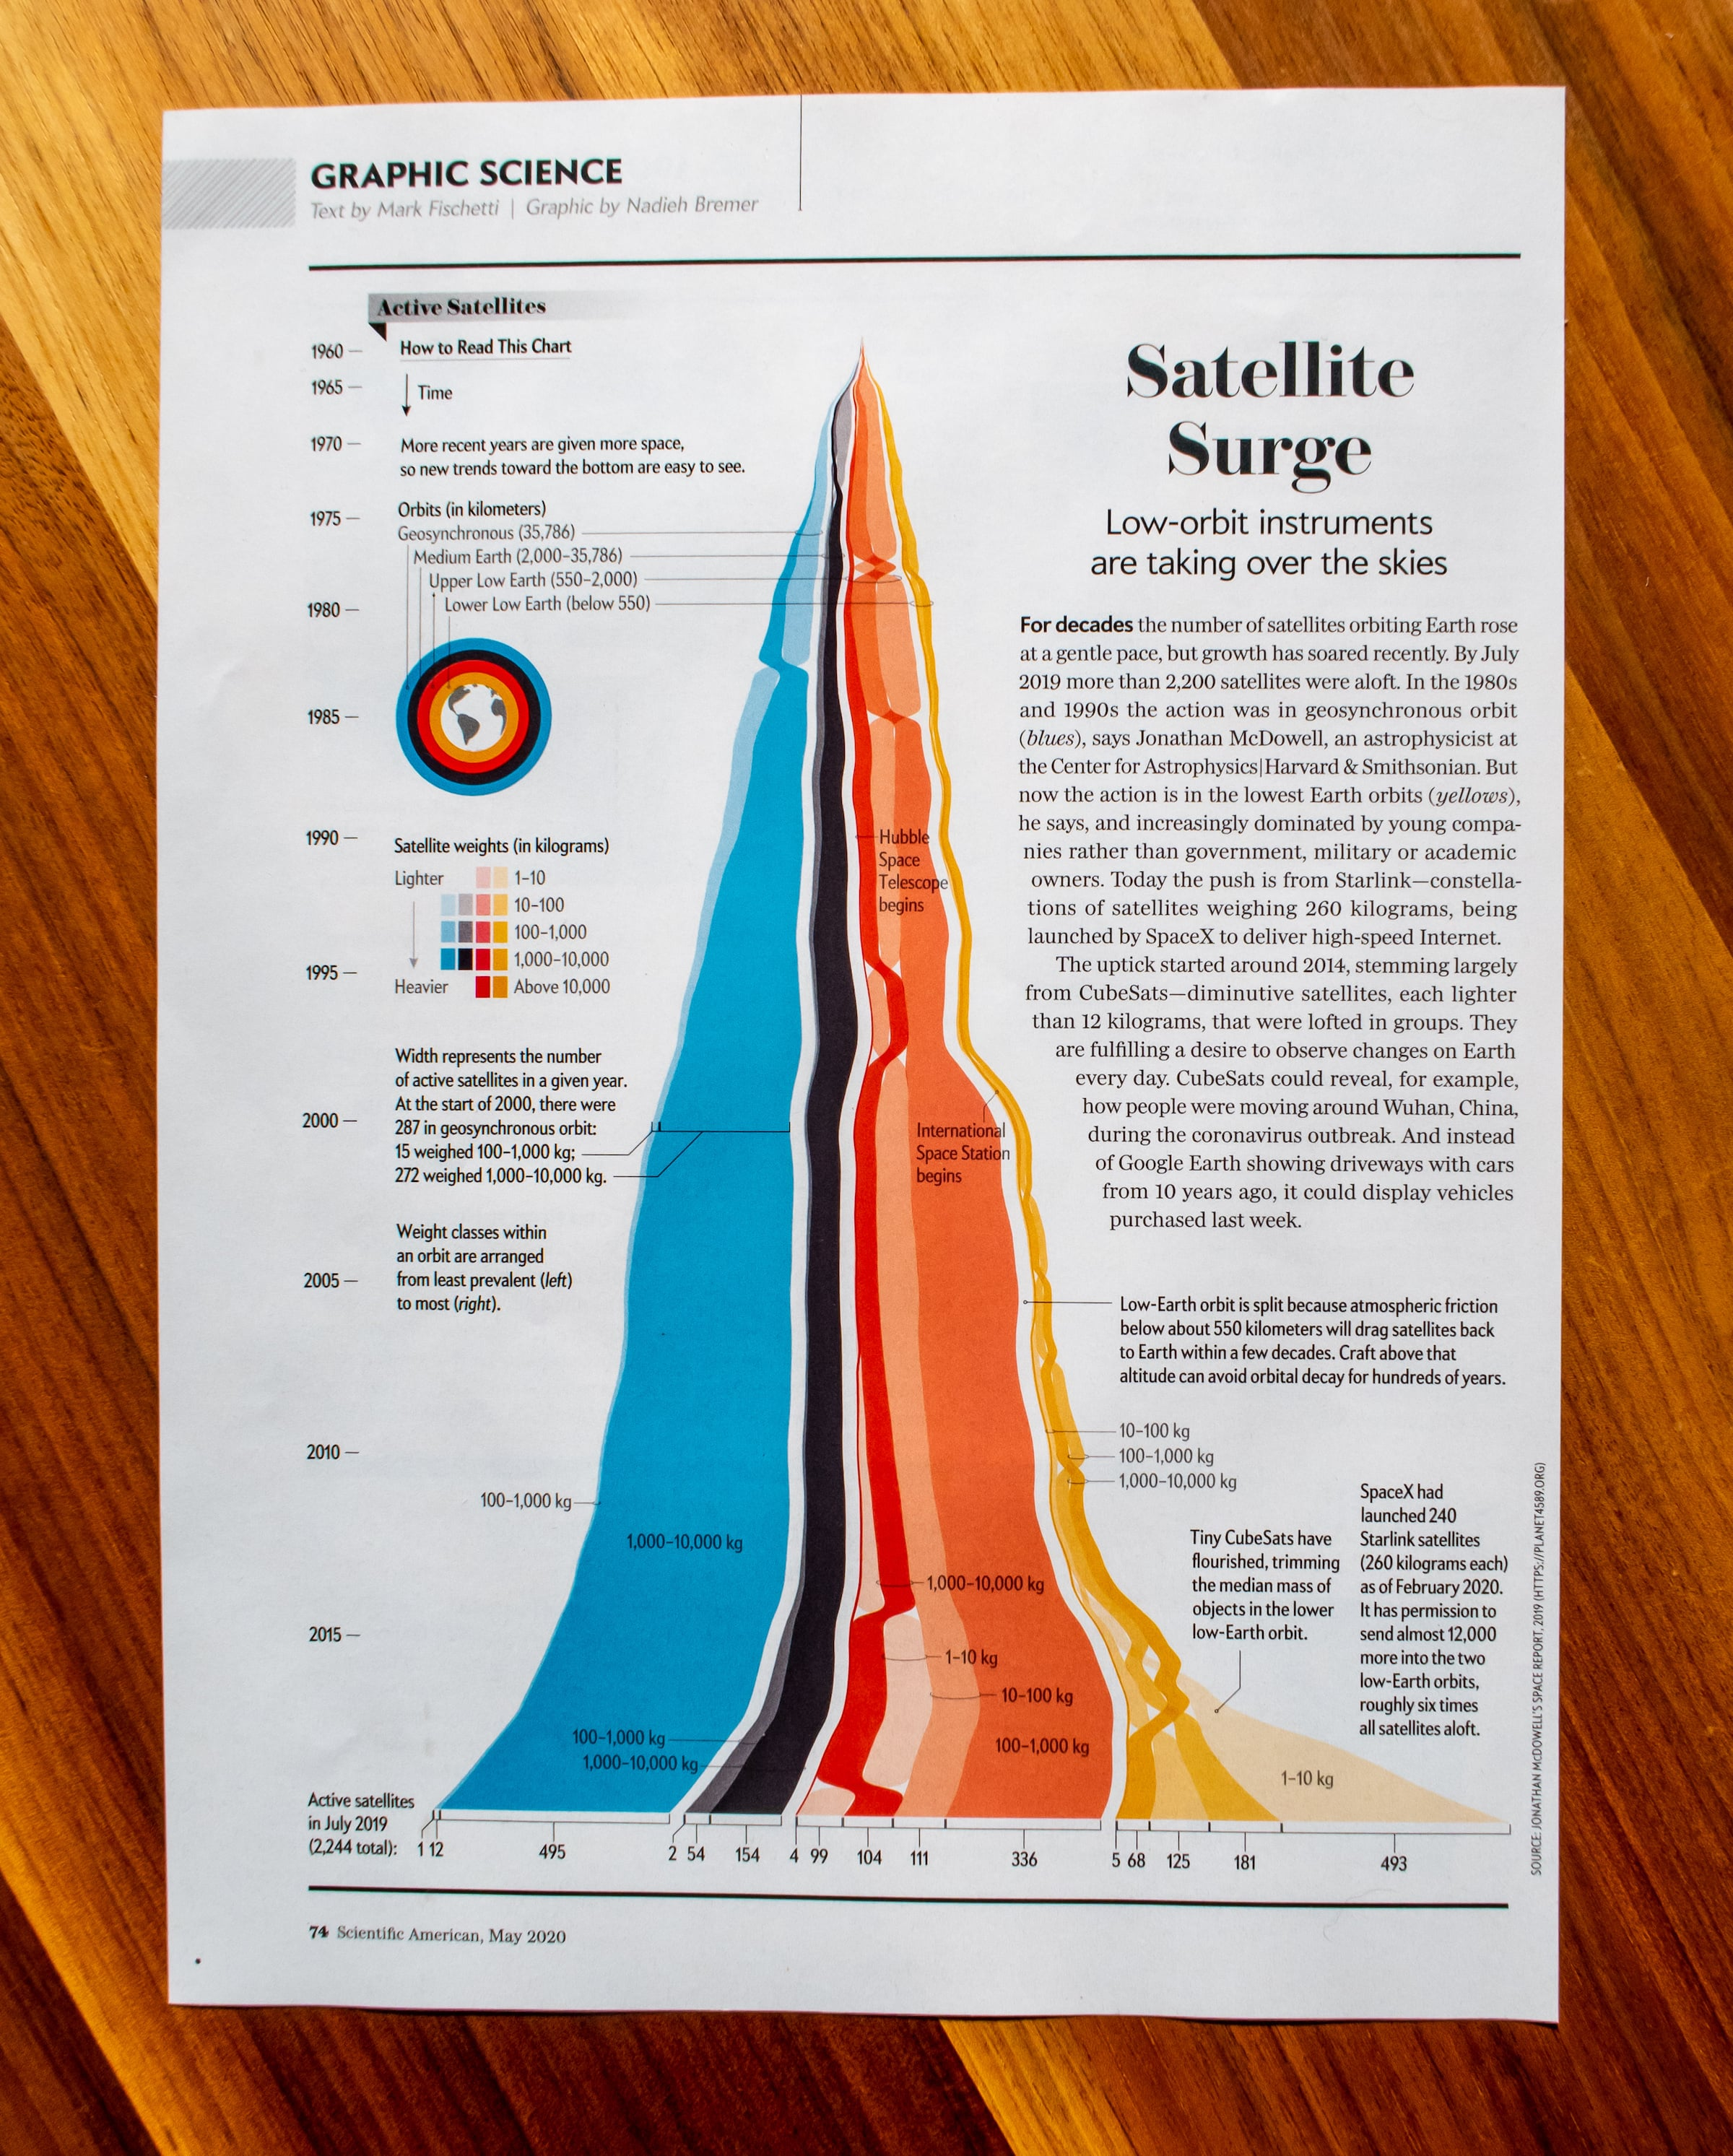 The full 'Graphic Science' spread in the May 2020 issue of Scientific American